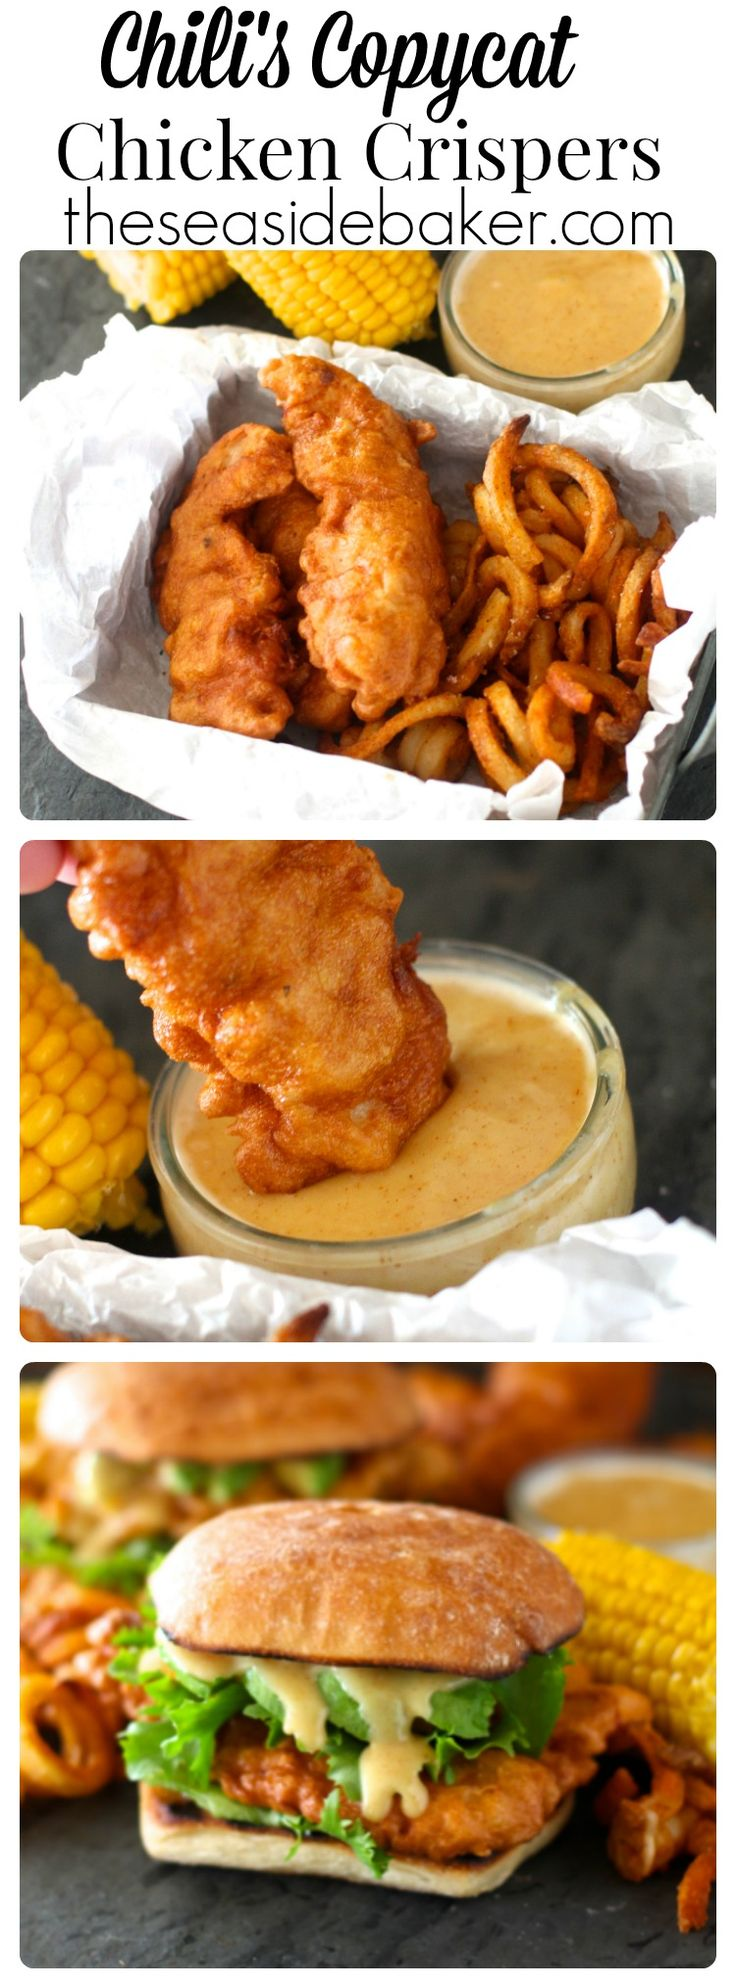 Homemade crispy battered chicken tenders with honey mustard dipping sauce just like at Chili's! Recipe on @